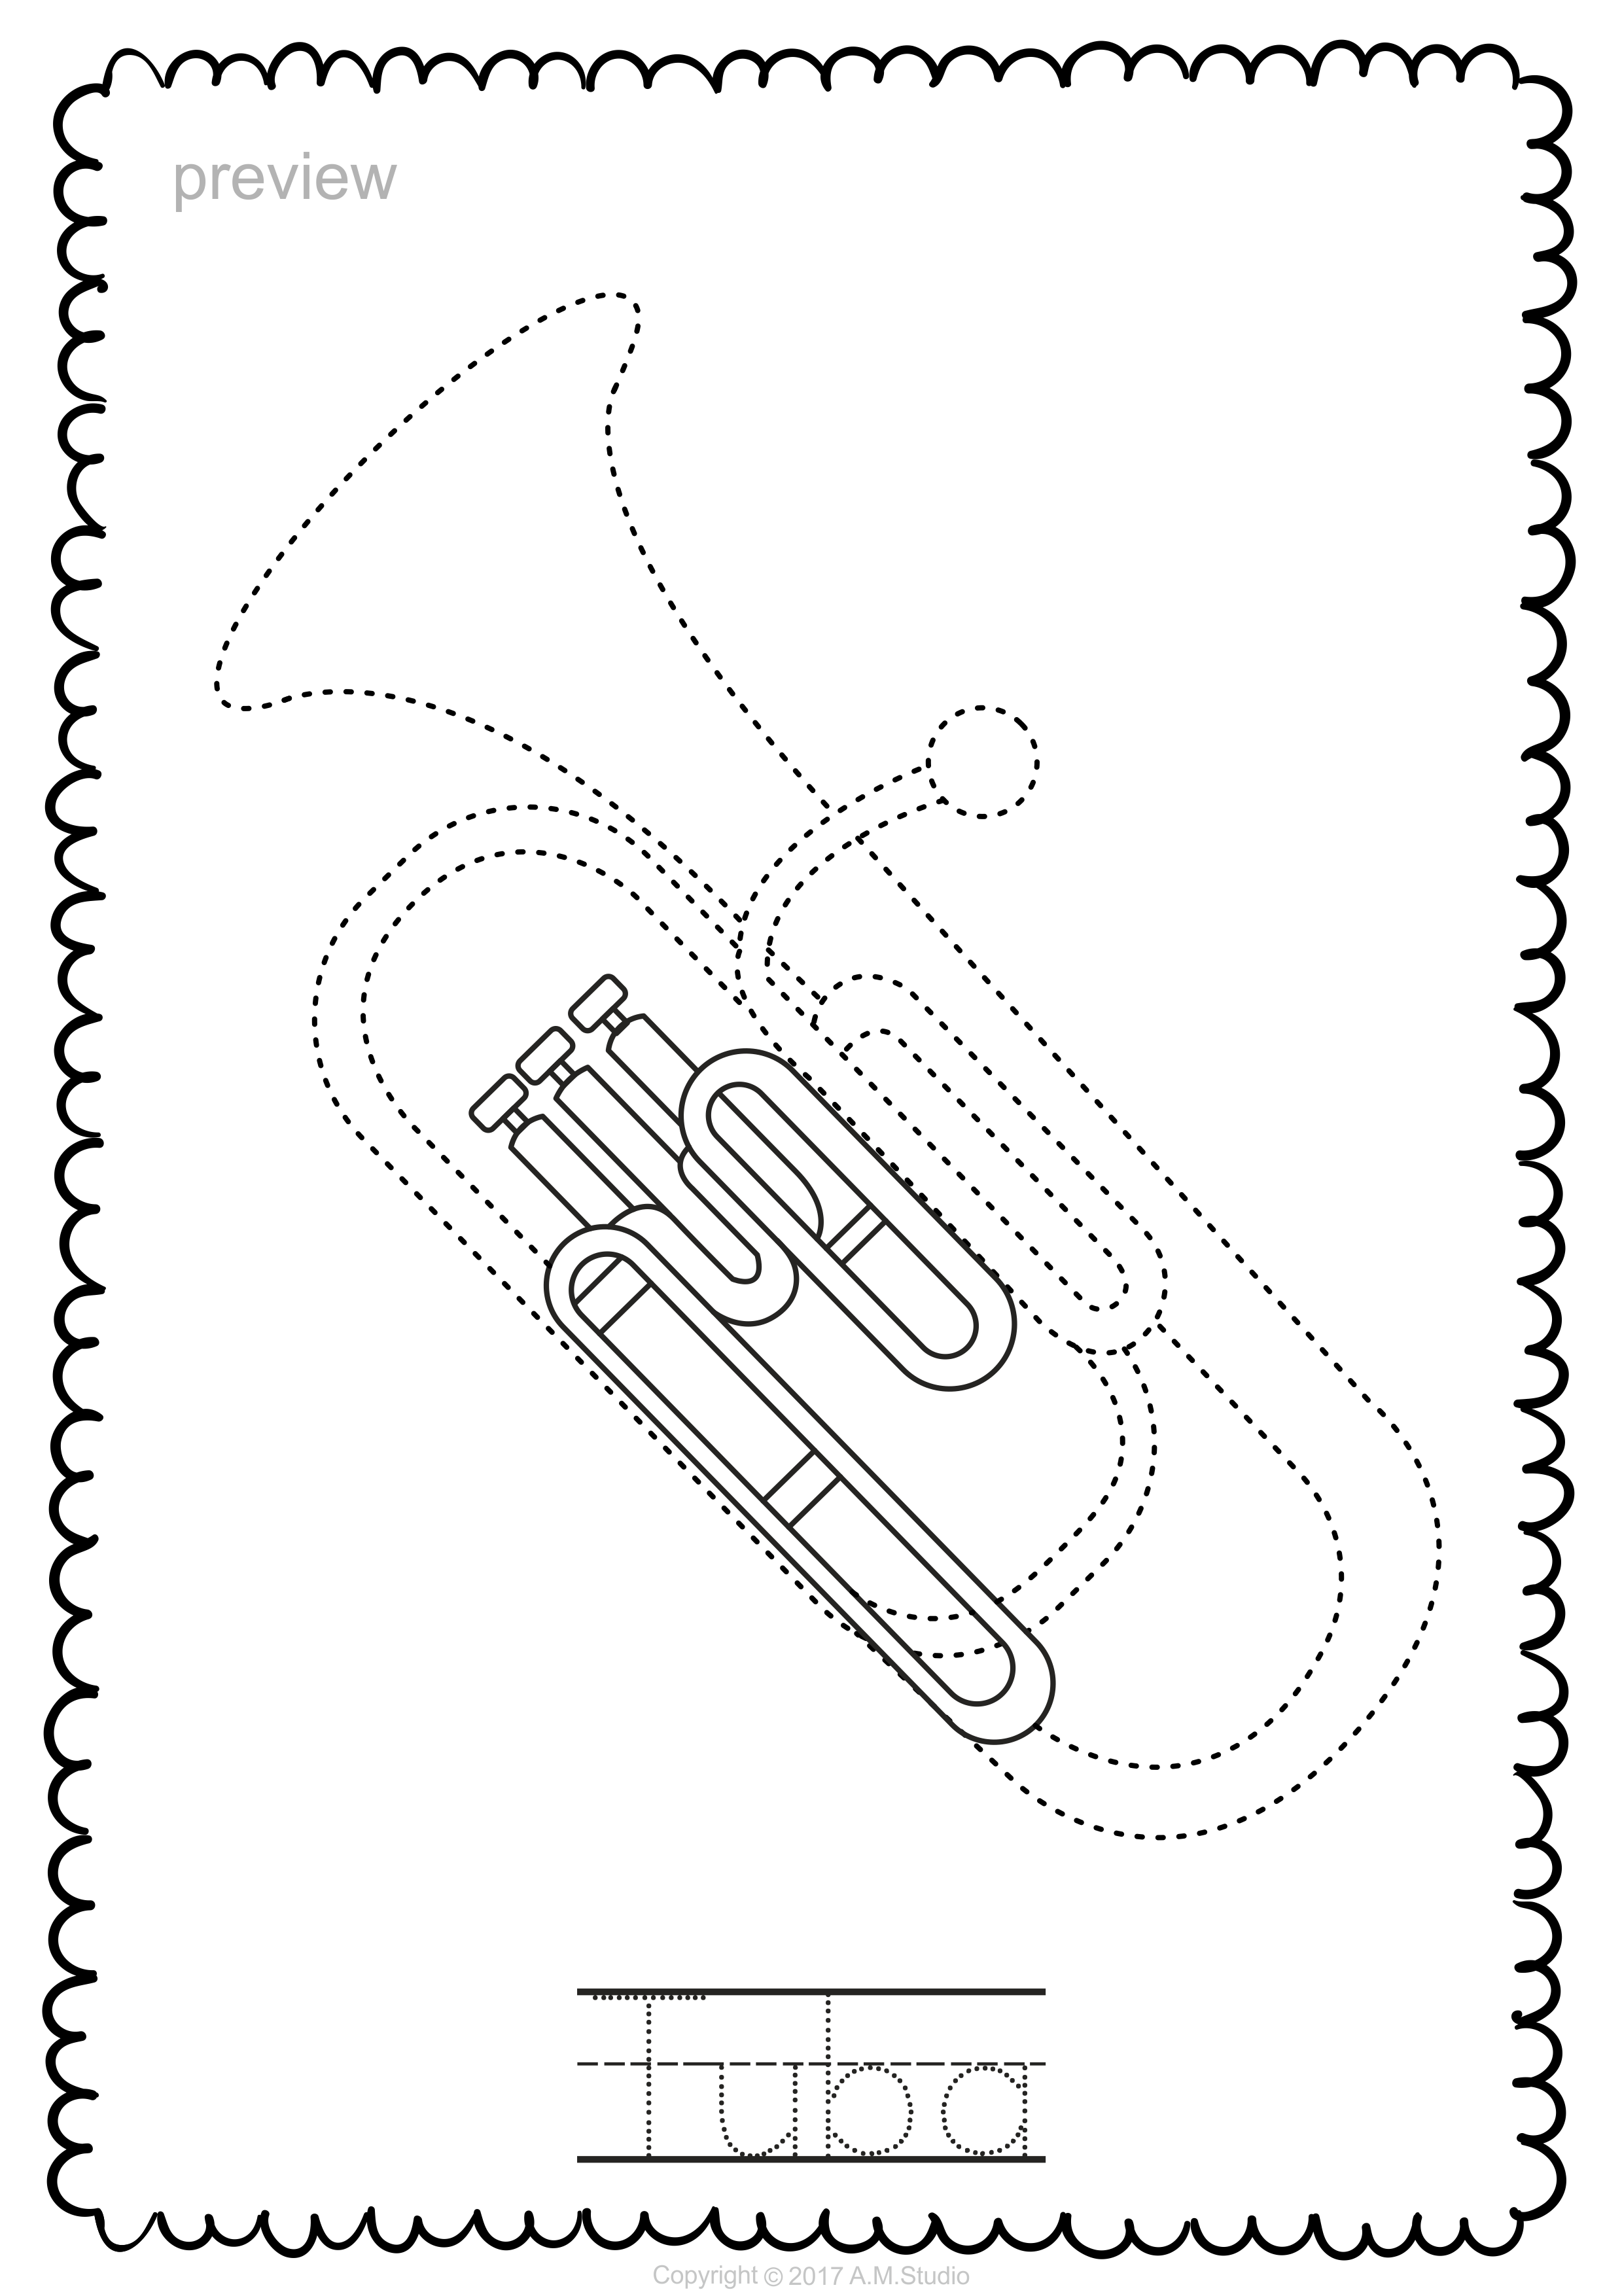 Brass Instruments Trace And Color Pages With Images